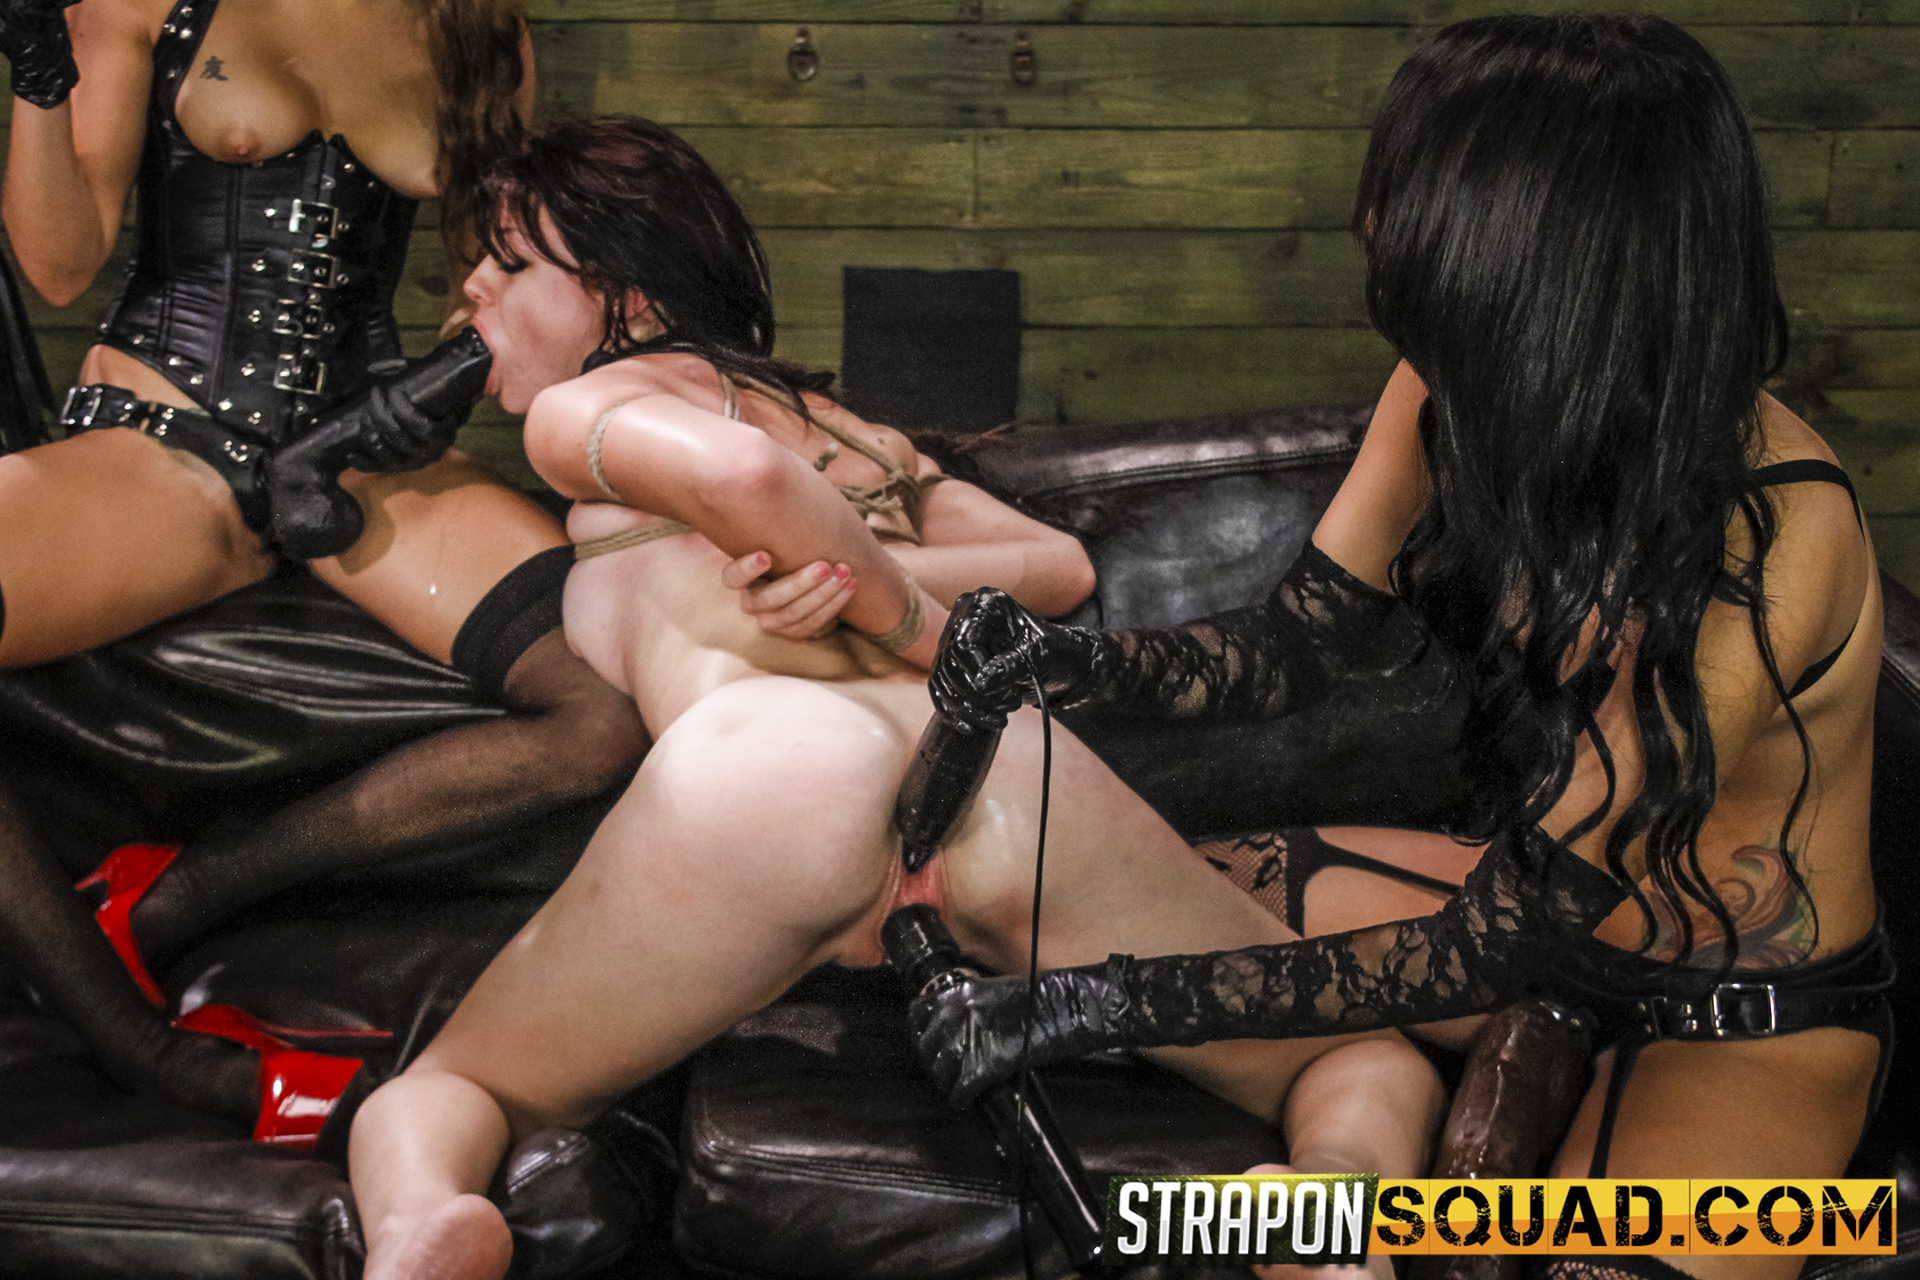 All Girl Dominance & Sybian Saddle Three-way With Kaisey Dean, Marina Angel, Esmi Lee